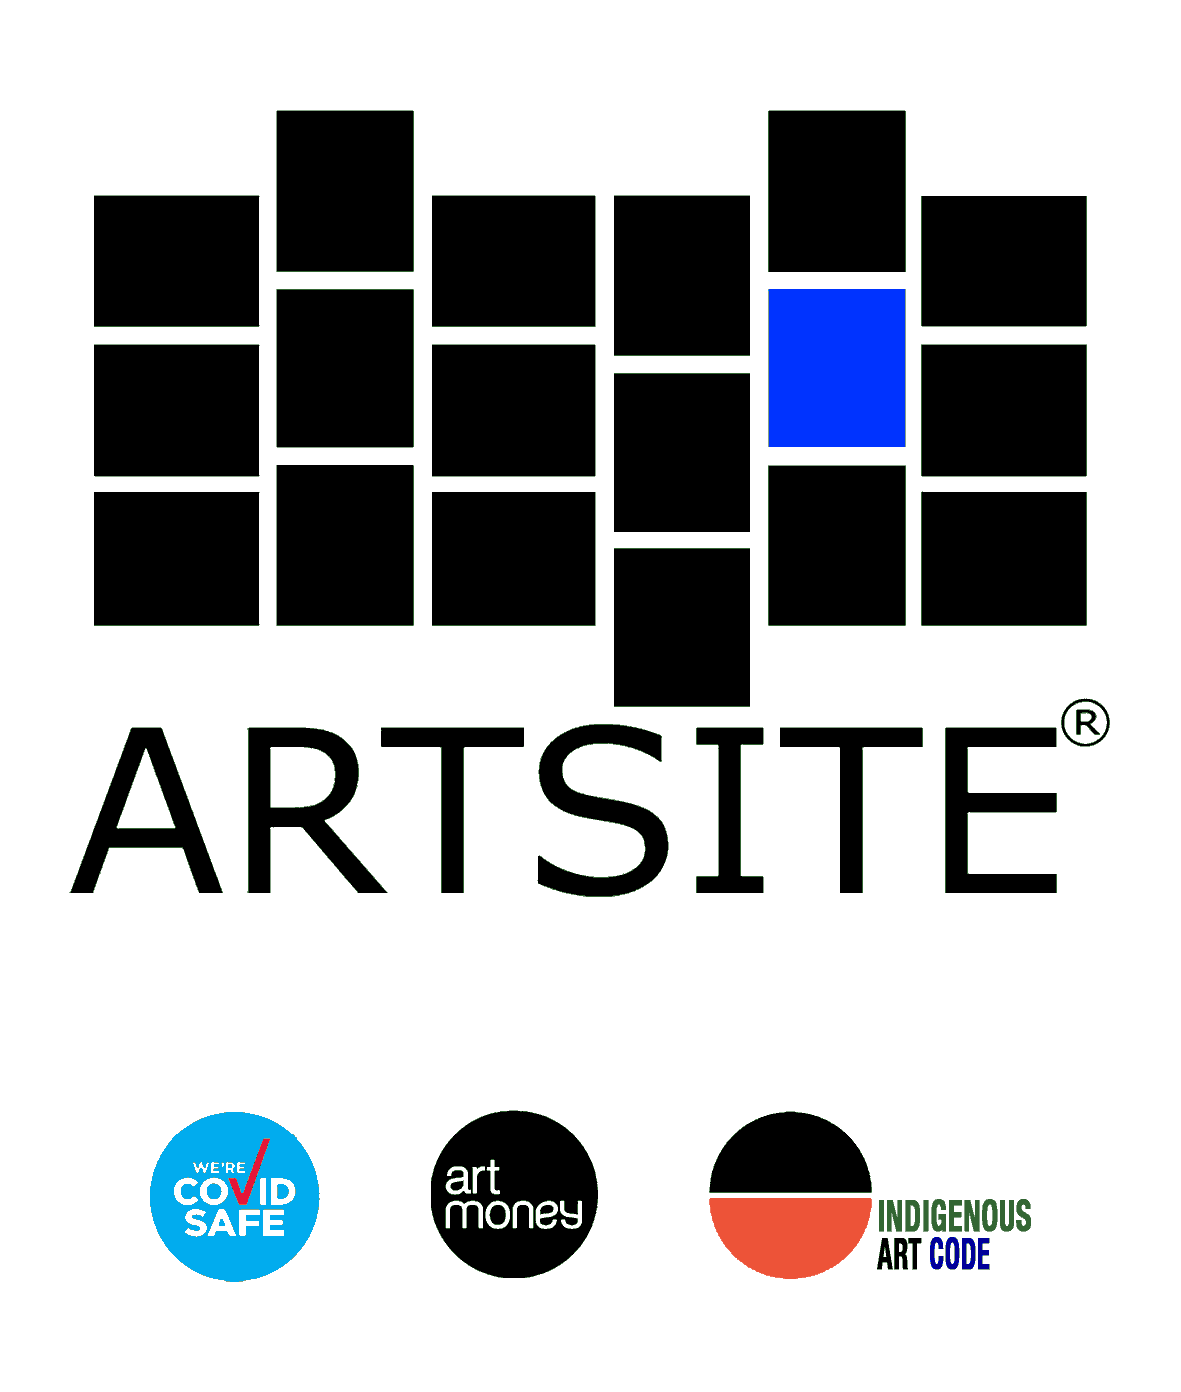 Artsite Galleries supports local emerging Artists and Represents both local emerging and internationally recognised Australian Artists. Accredited by NAVA and a signatory member of the Indigenous Art Code of Australia. The word 'Artsite' is a Registered Trademark. All rights reserved.